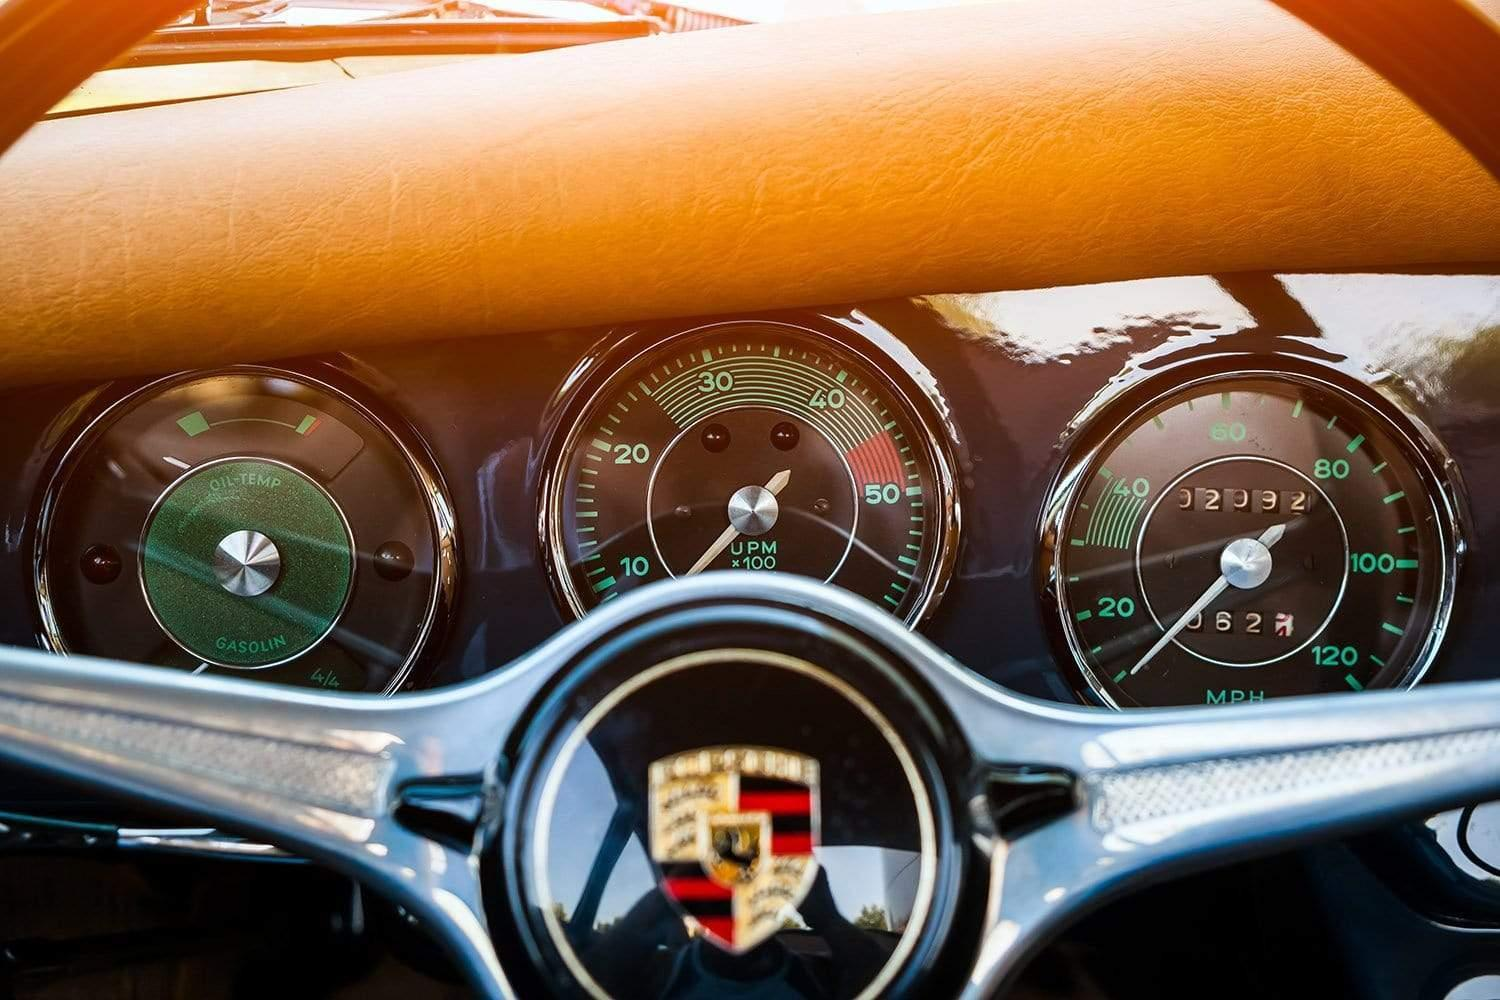 Rent a classic car in Italy and drive the Mille Miglia